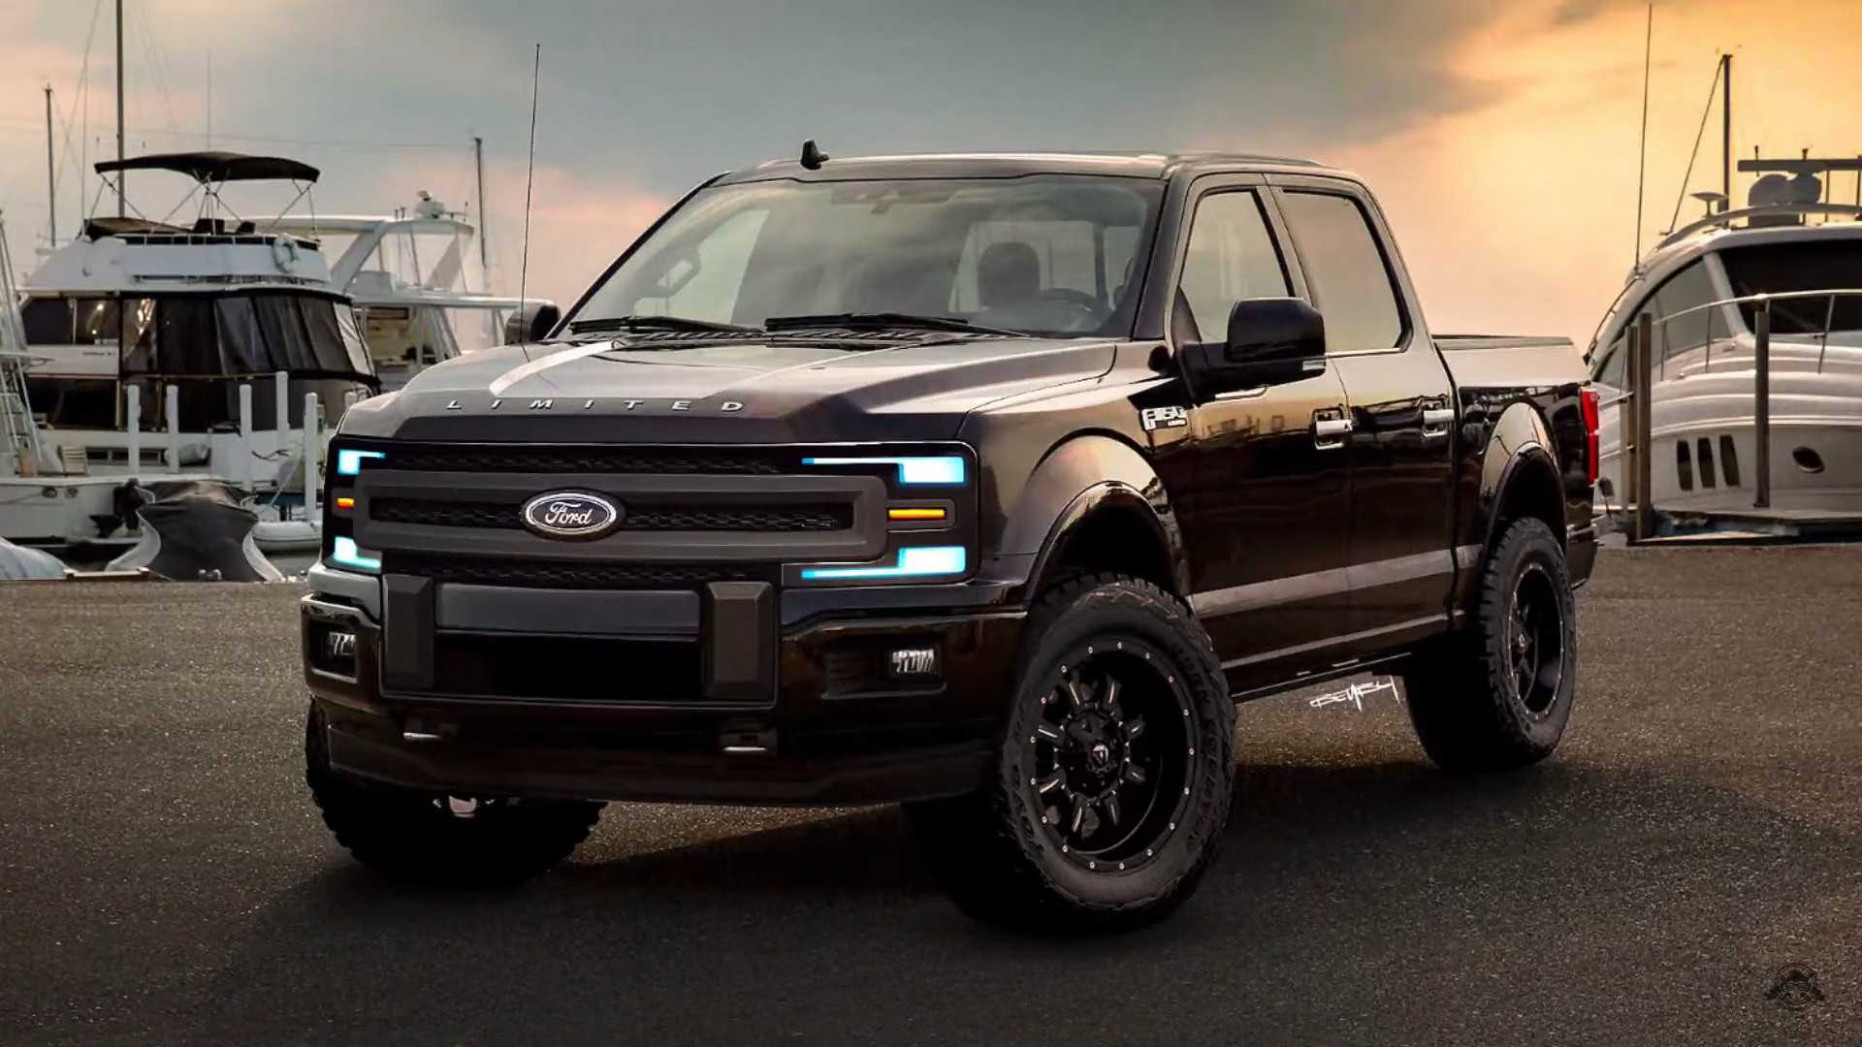 Redesign and Concept 2022 Ford Lobo